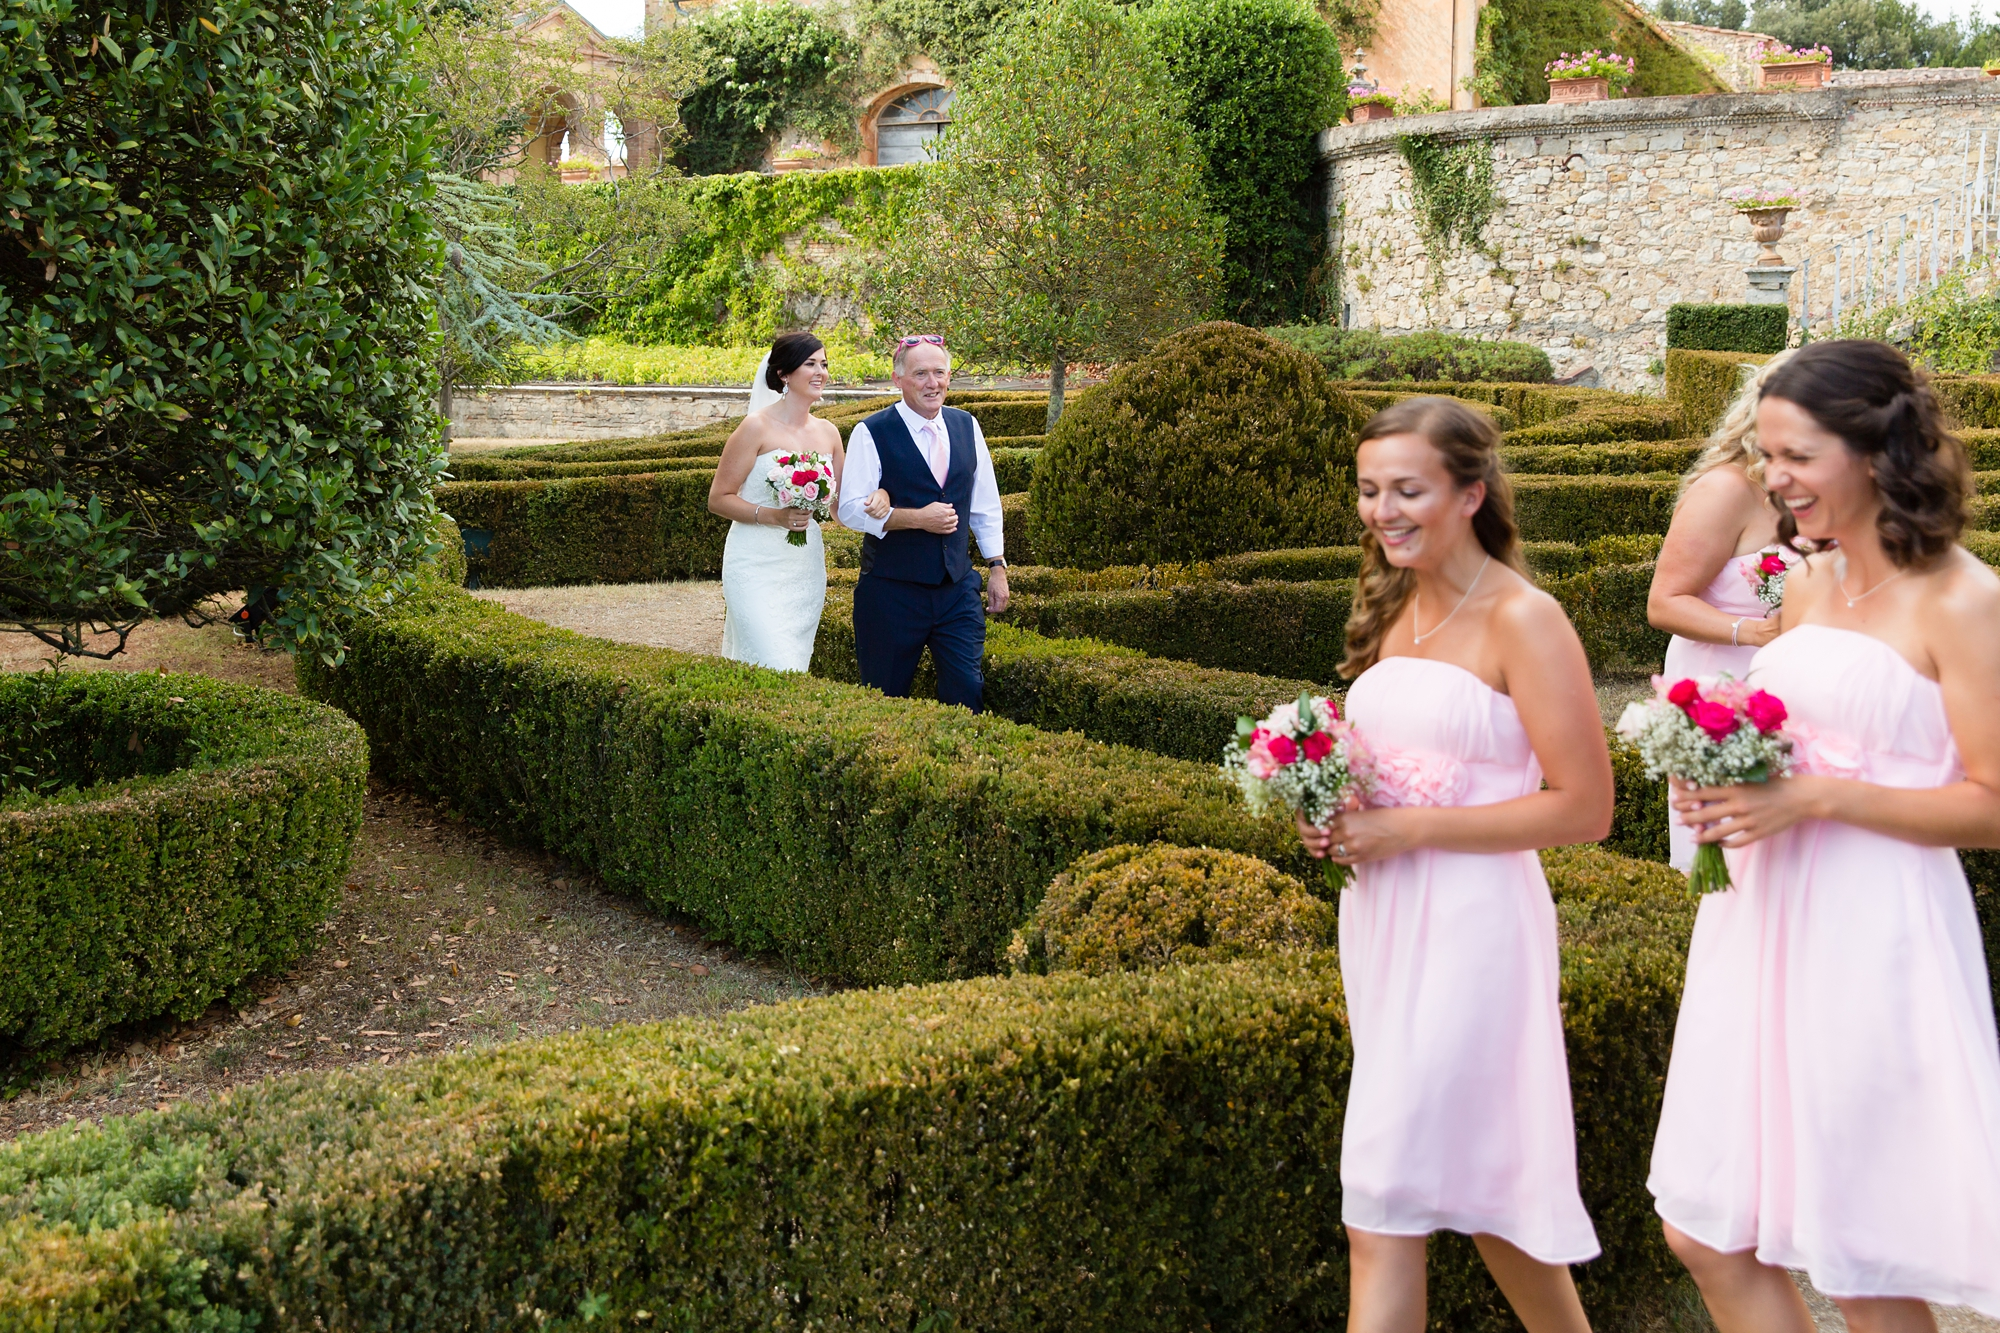 Villa Catignano Siena Wedding Photography walking through hedge maze